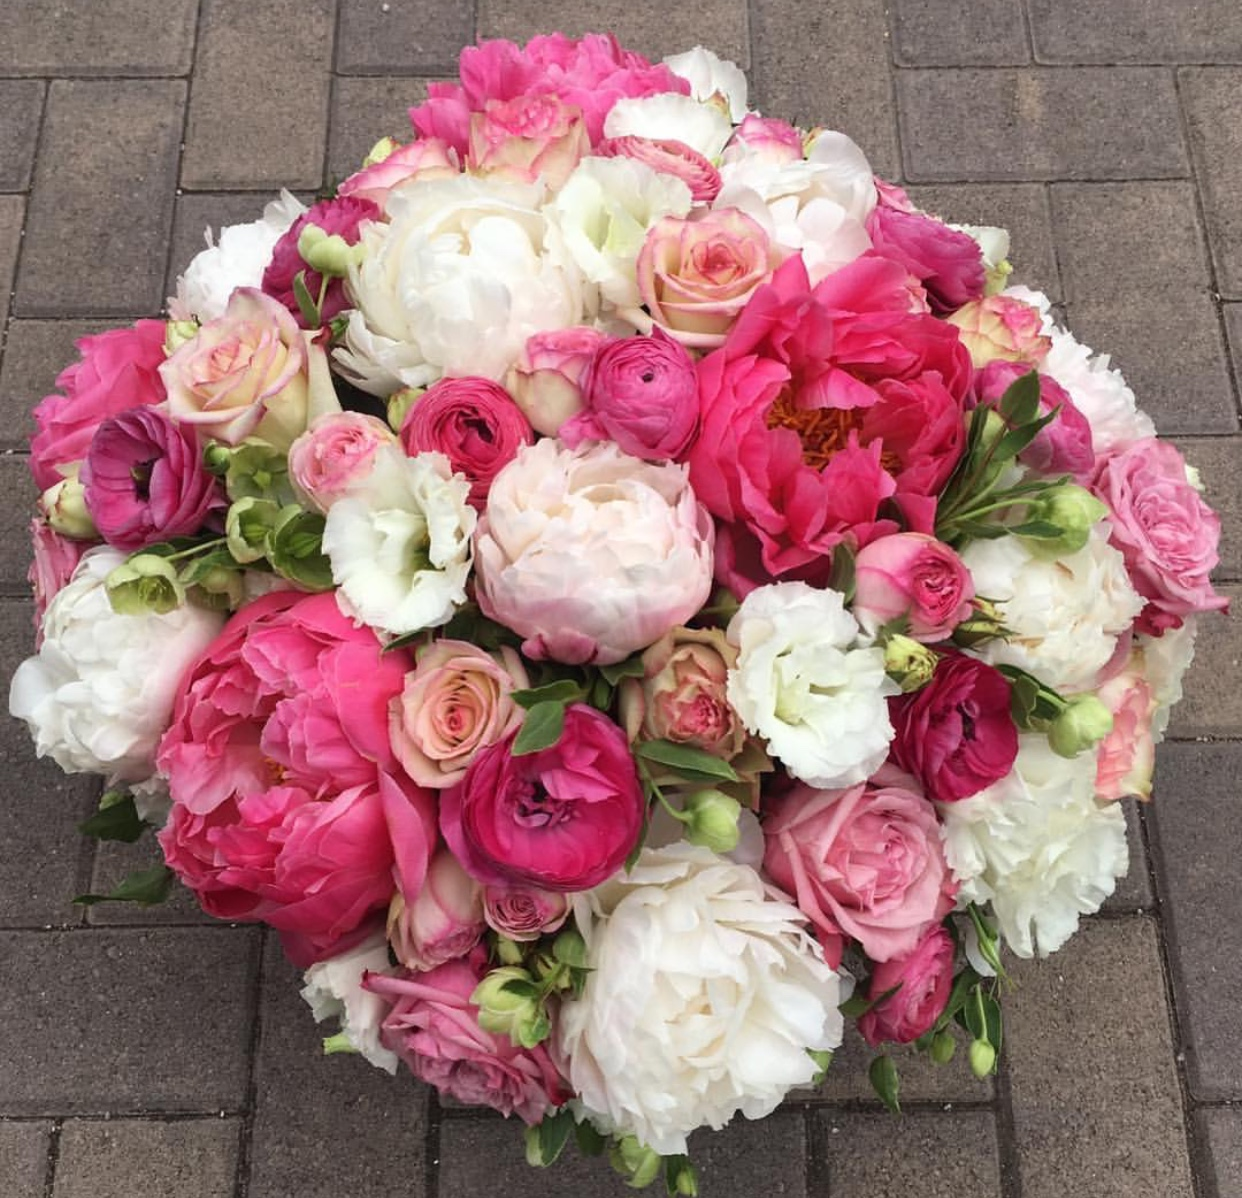 52. White and Pink Peony Arrangement